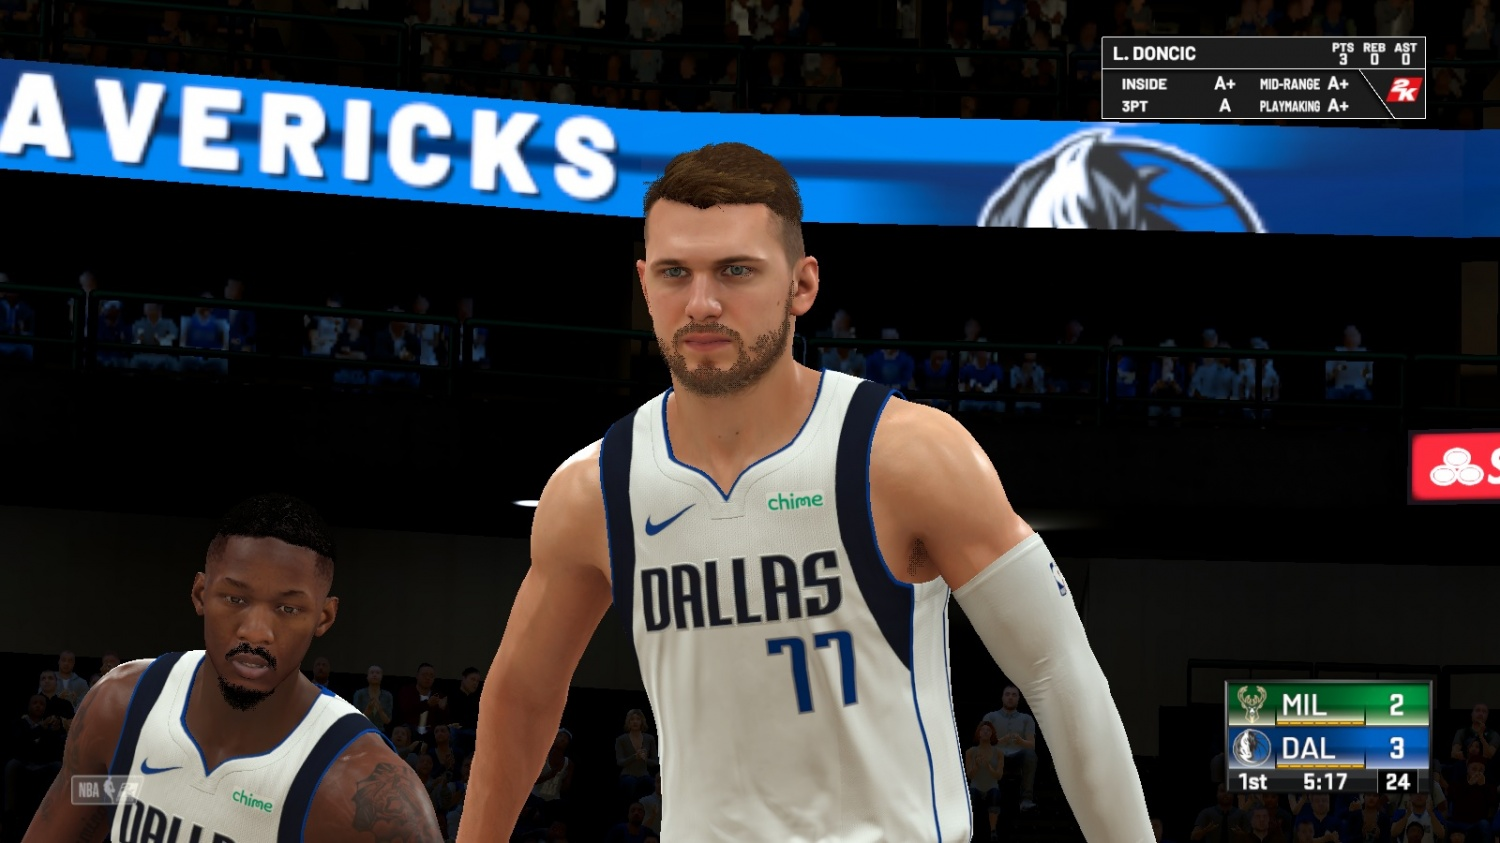 [LOOK] 2K Hints on Possible List of Highest-Rated Players in 'NBA 2K22'-Expected Release Date, Trailer, and MORE